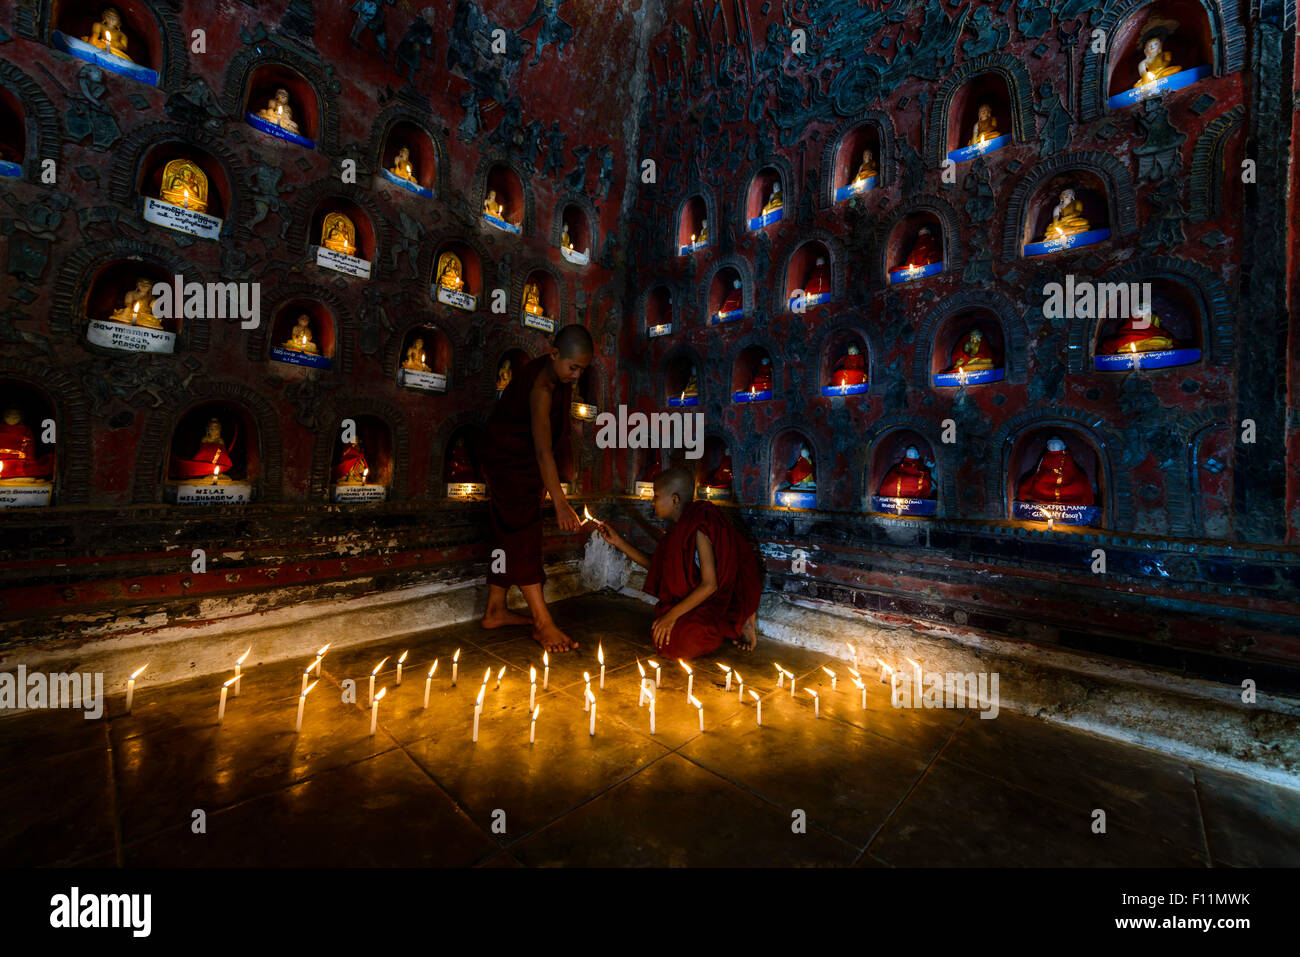 Asian monks-in-training lighting candles in ancient temple - Stock Image